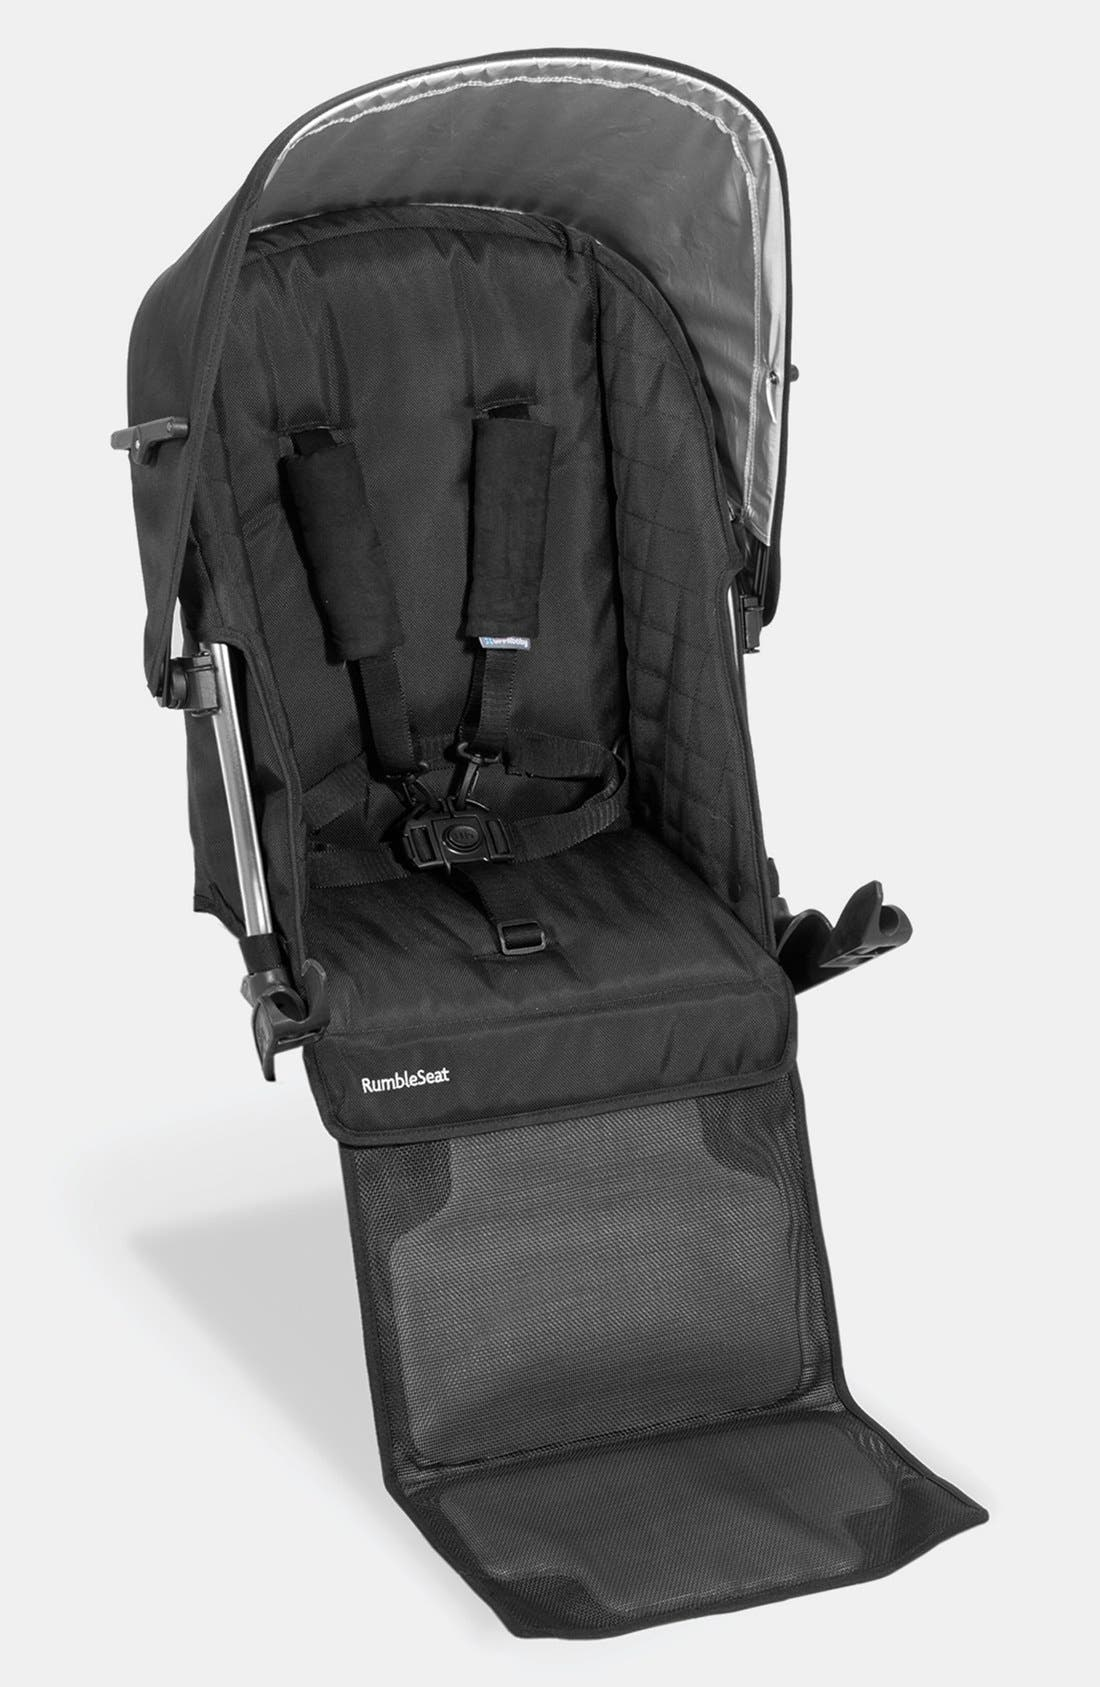 Alternate Image 1 Selected - UPPAbaby VISTA Stroller Rumble Seat